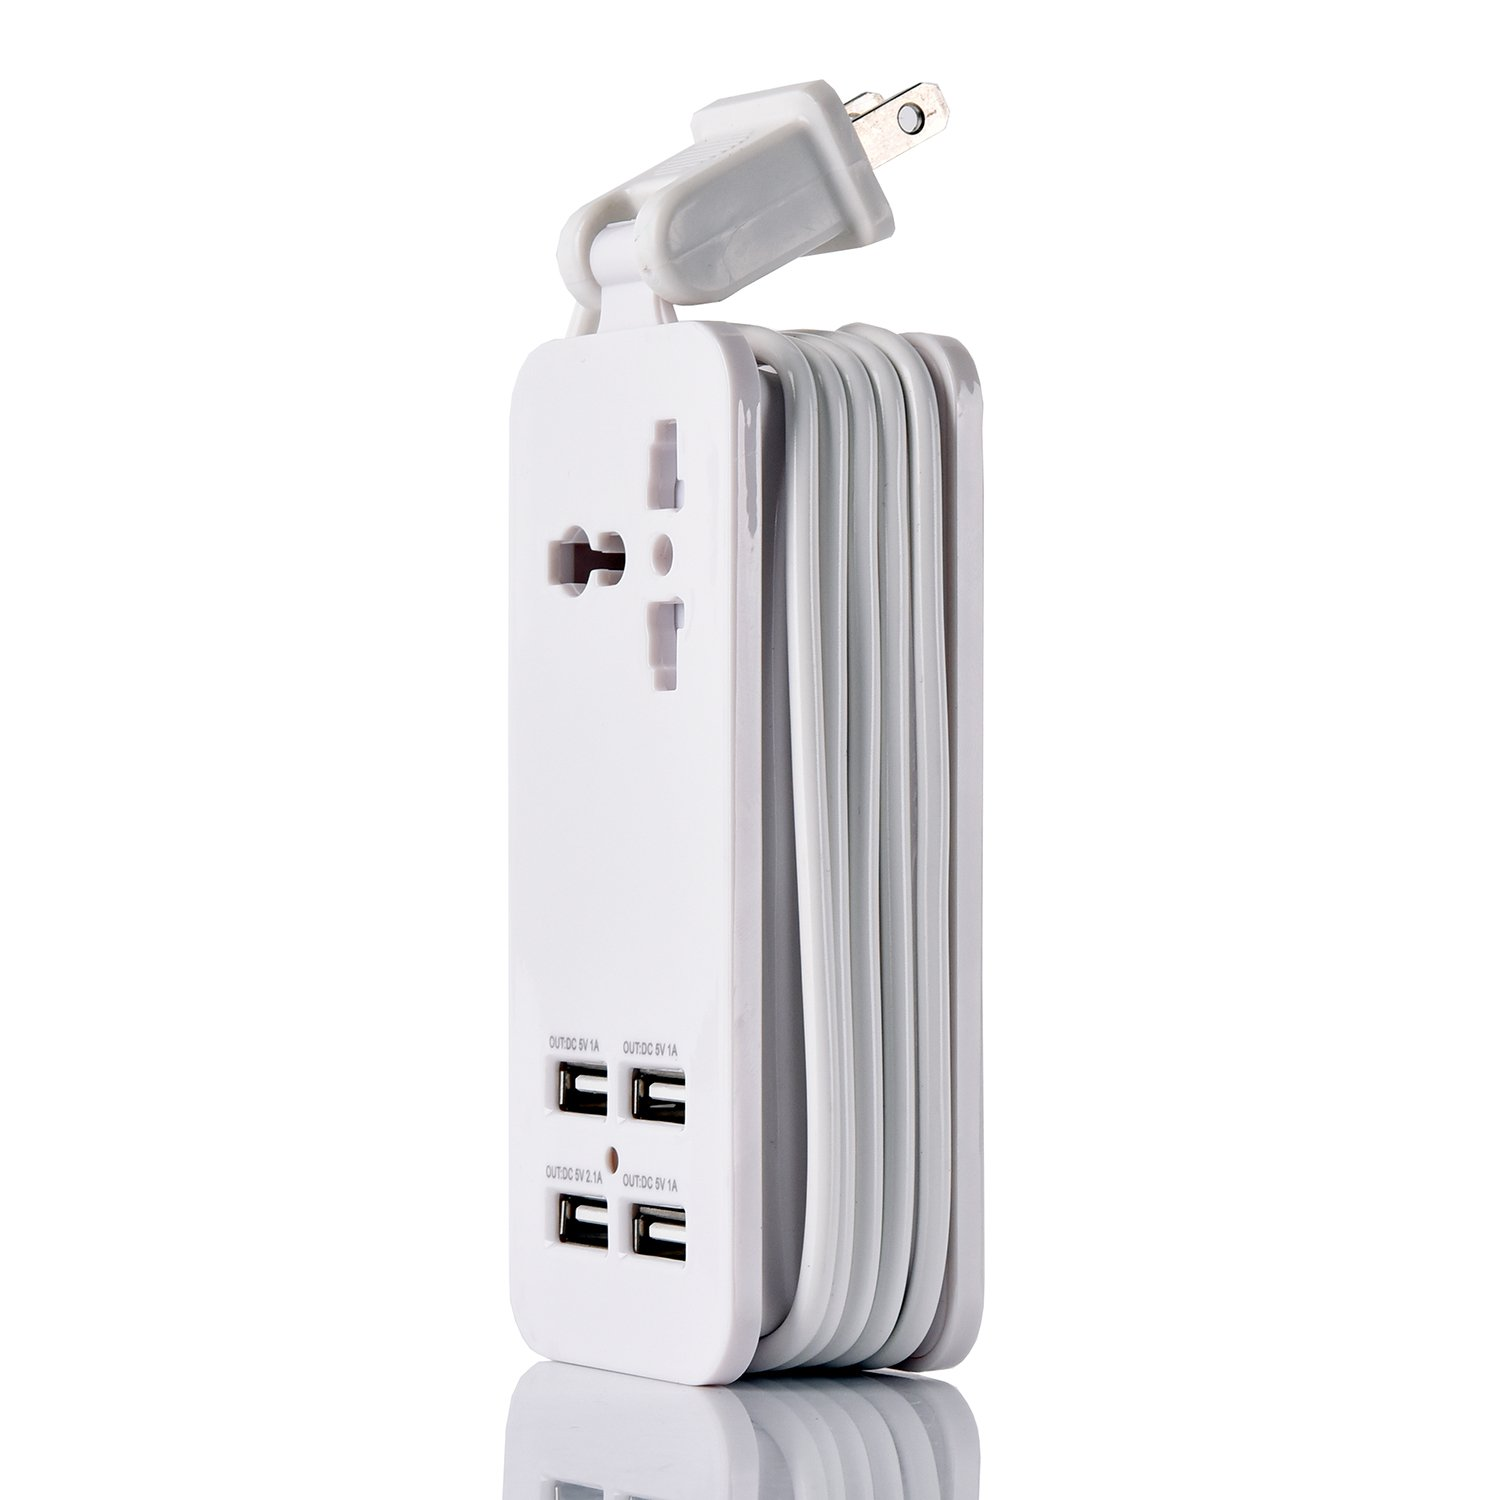 USB Power Strip Portable Travel Charger Outlets 2.1AMP 1AMP 21W 5Foot Power Supply Cord With Universal Plug Input From 100v-240v Power Sockets USB Charger Station 4 Port 5v 1A/2.1A USB Charger (White) by ETPocket (Image #2)